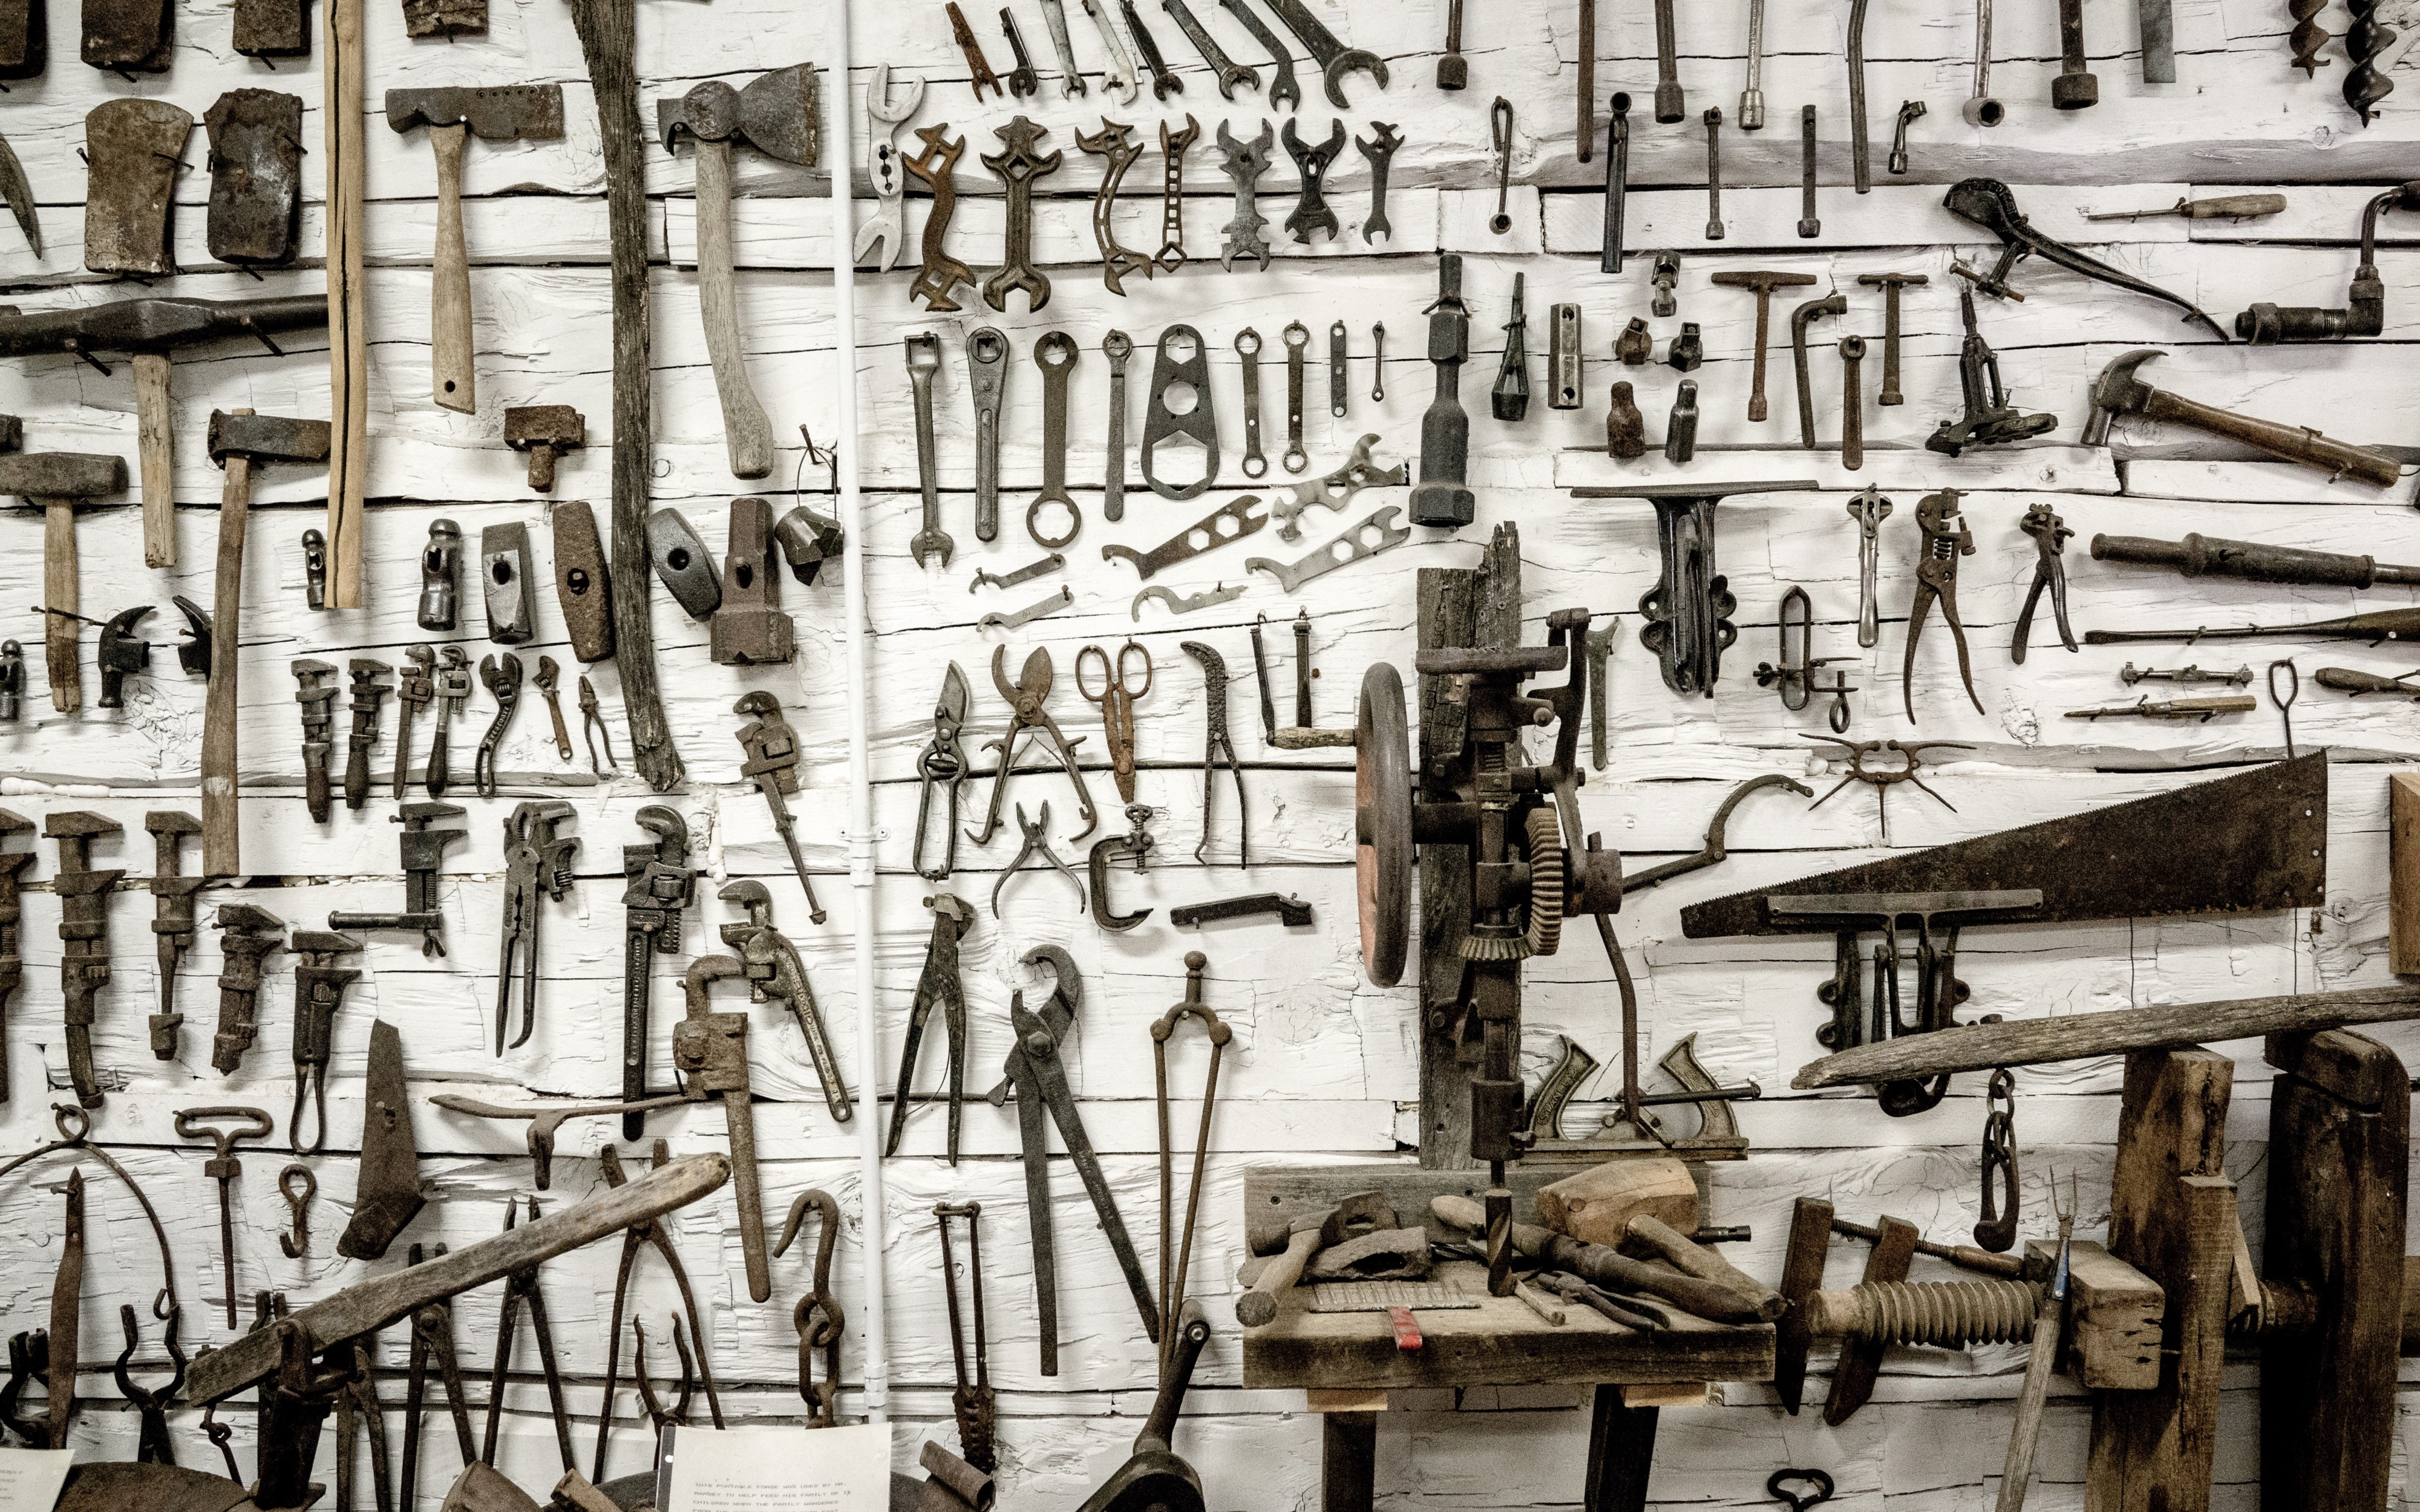 Tools hung on a wall